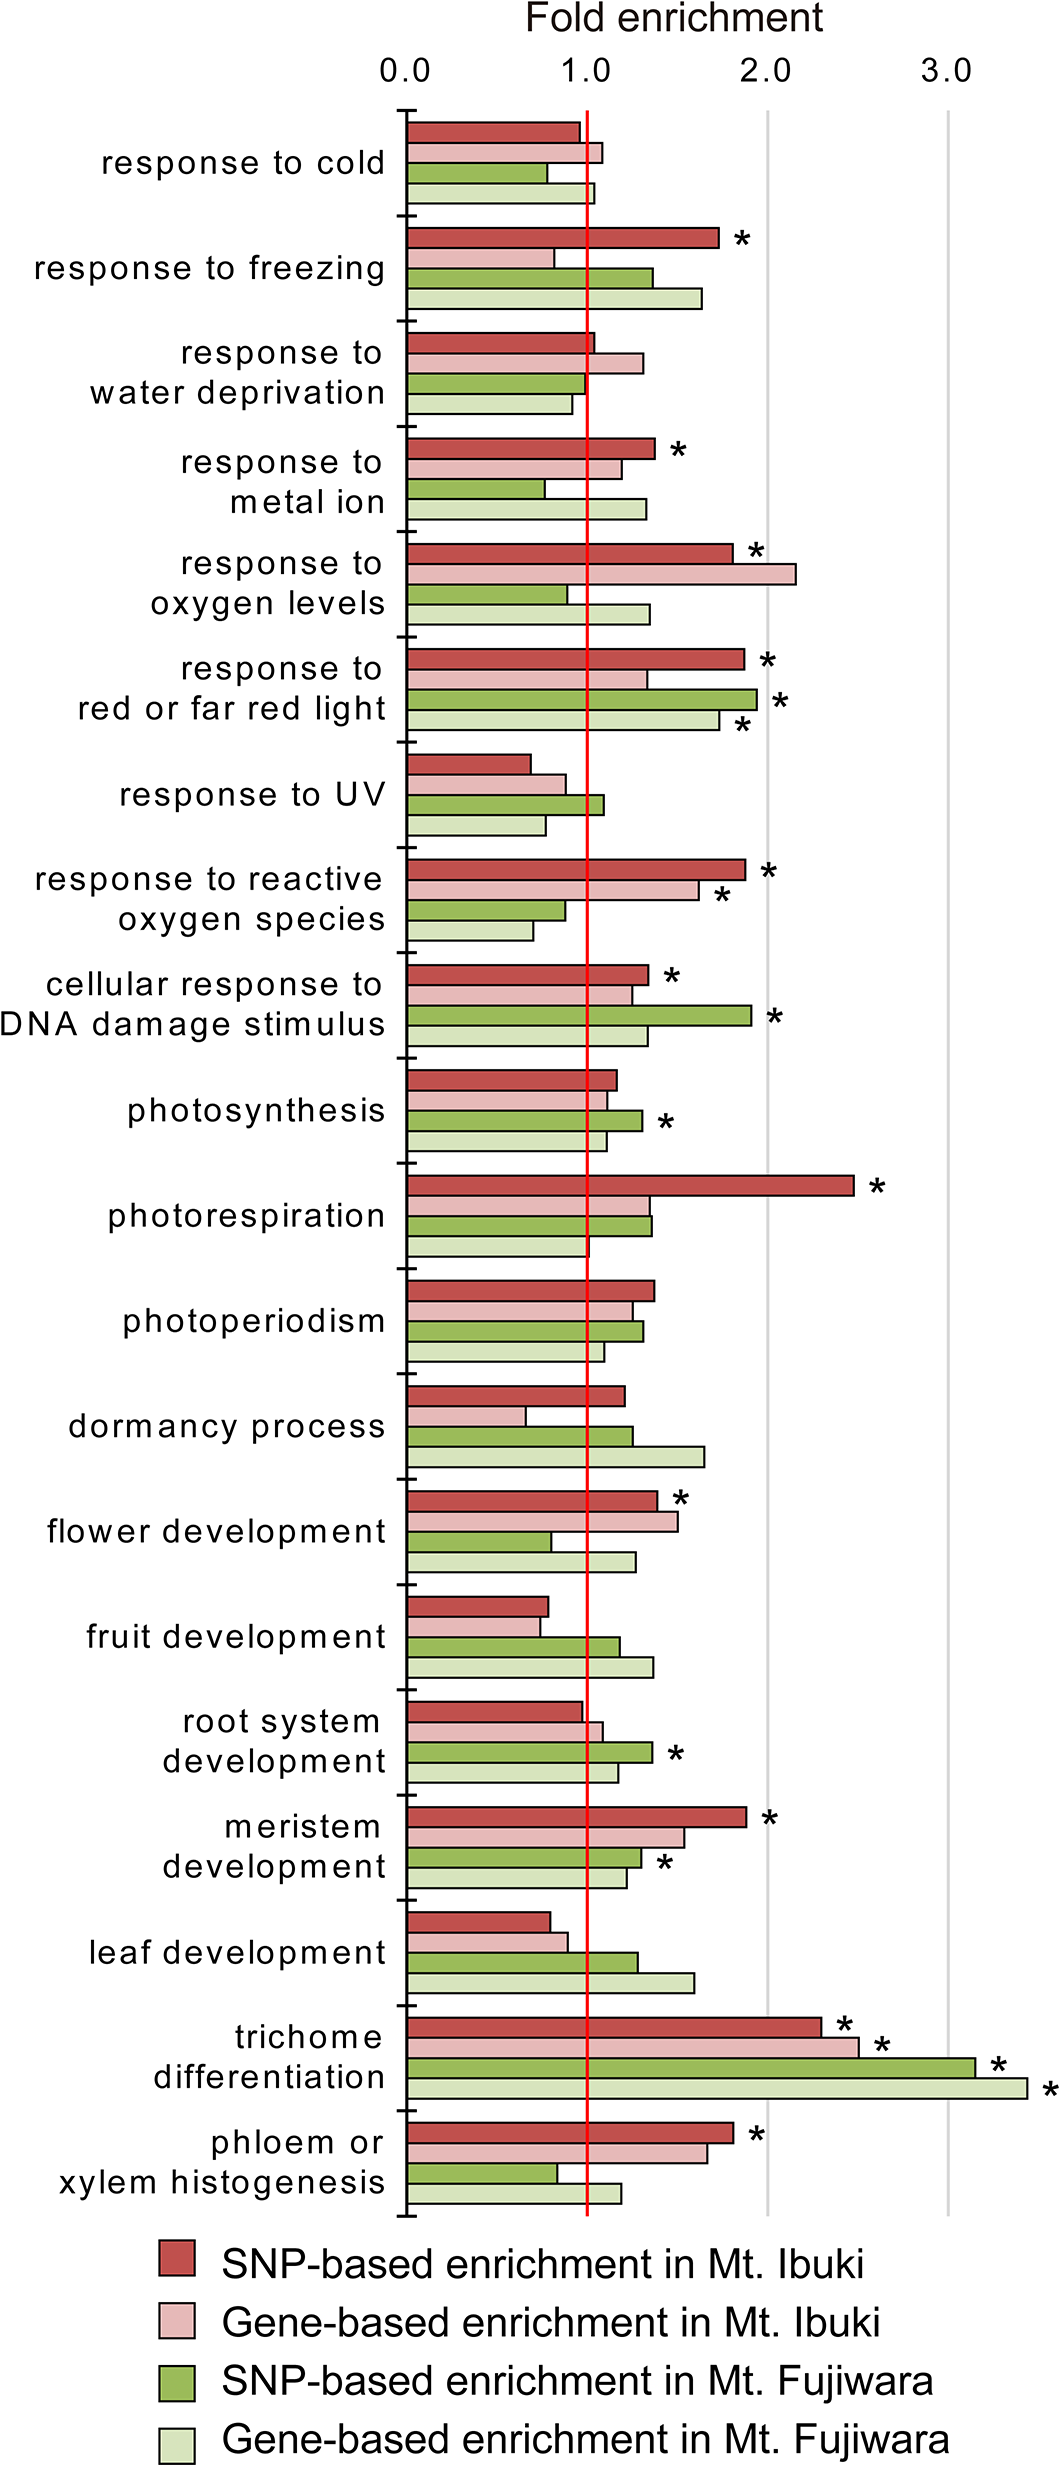 Enrichment analyses of the selected Gene Ontology terms.